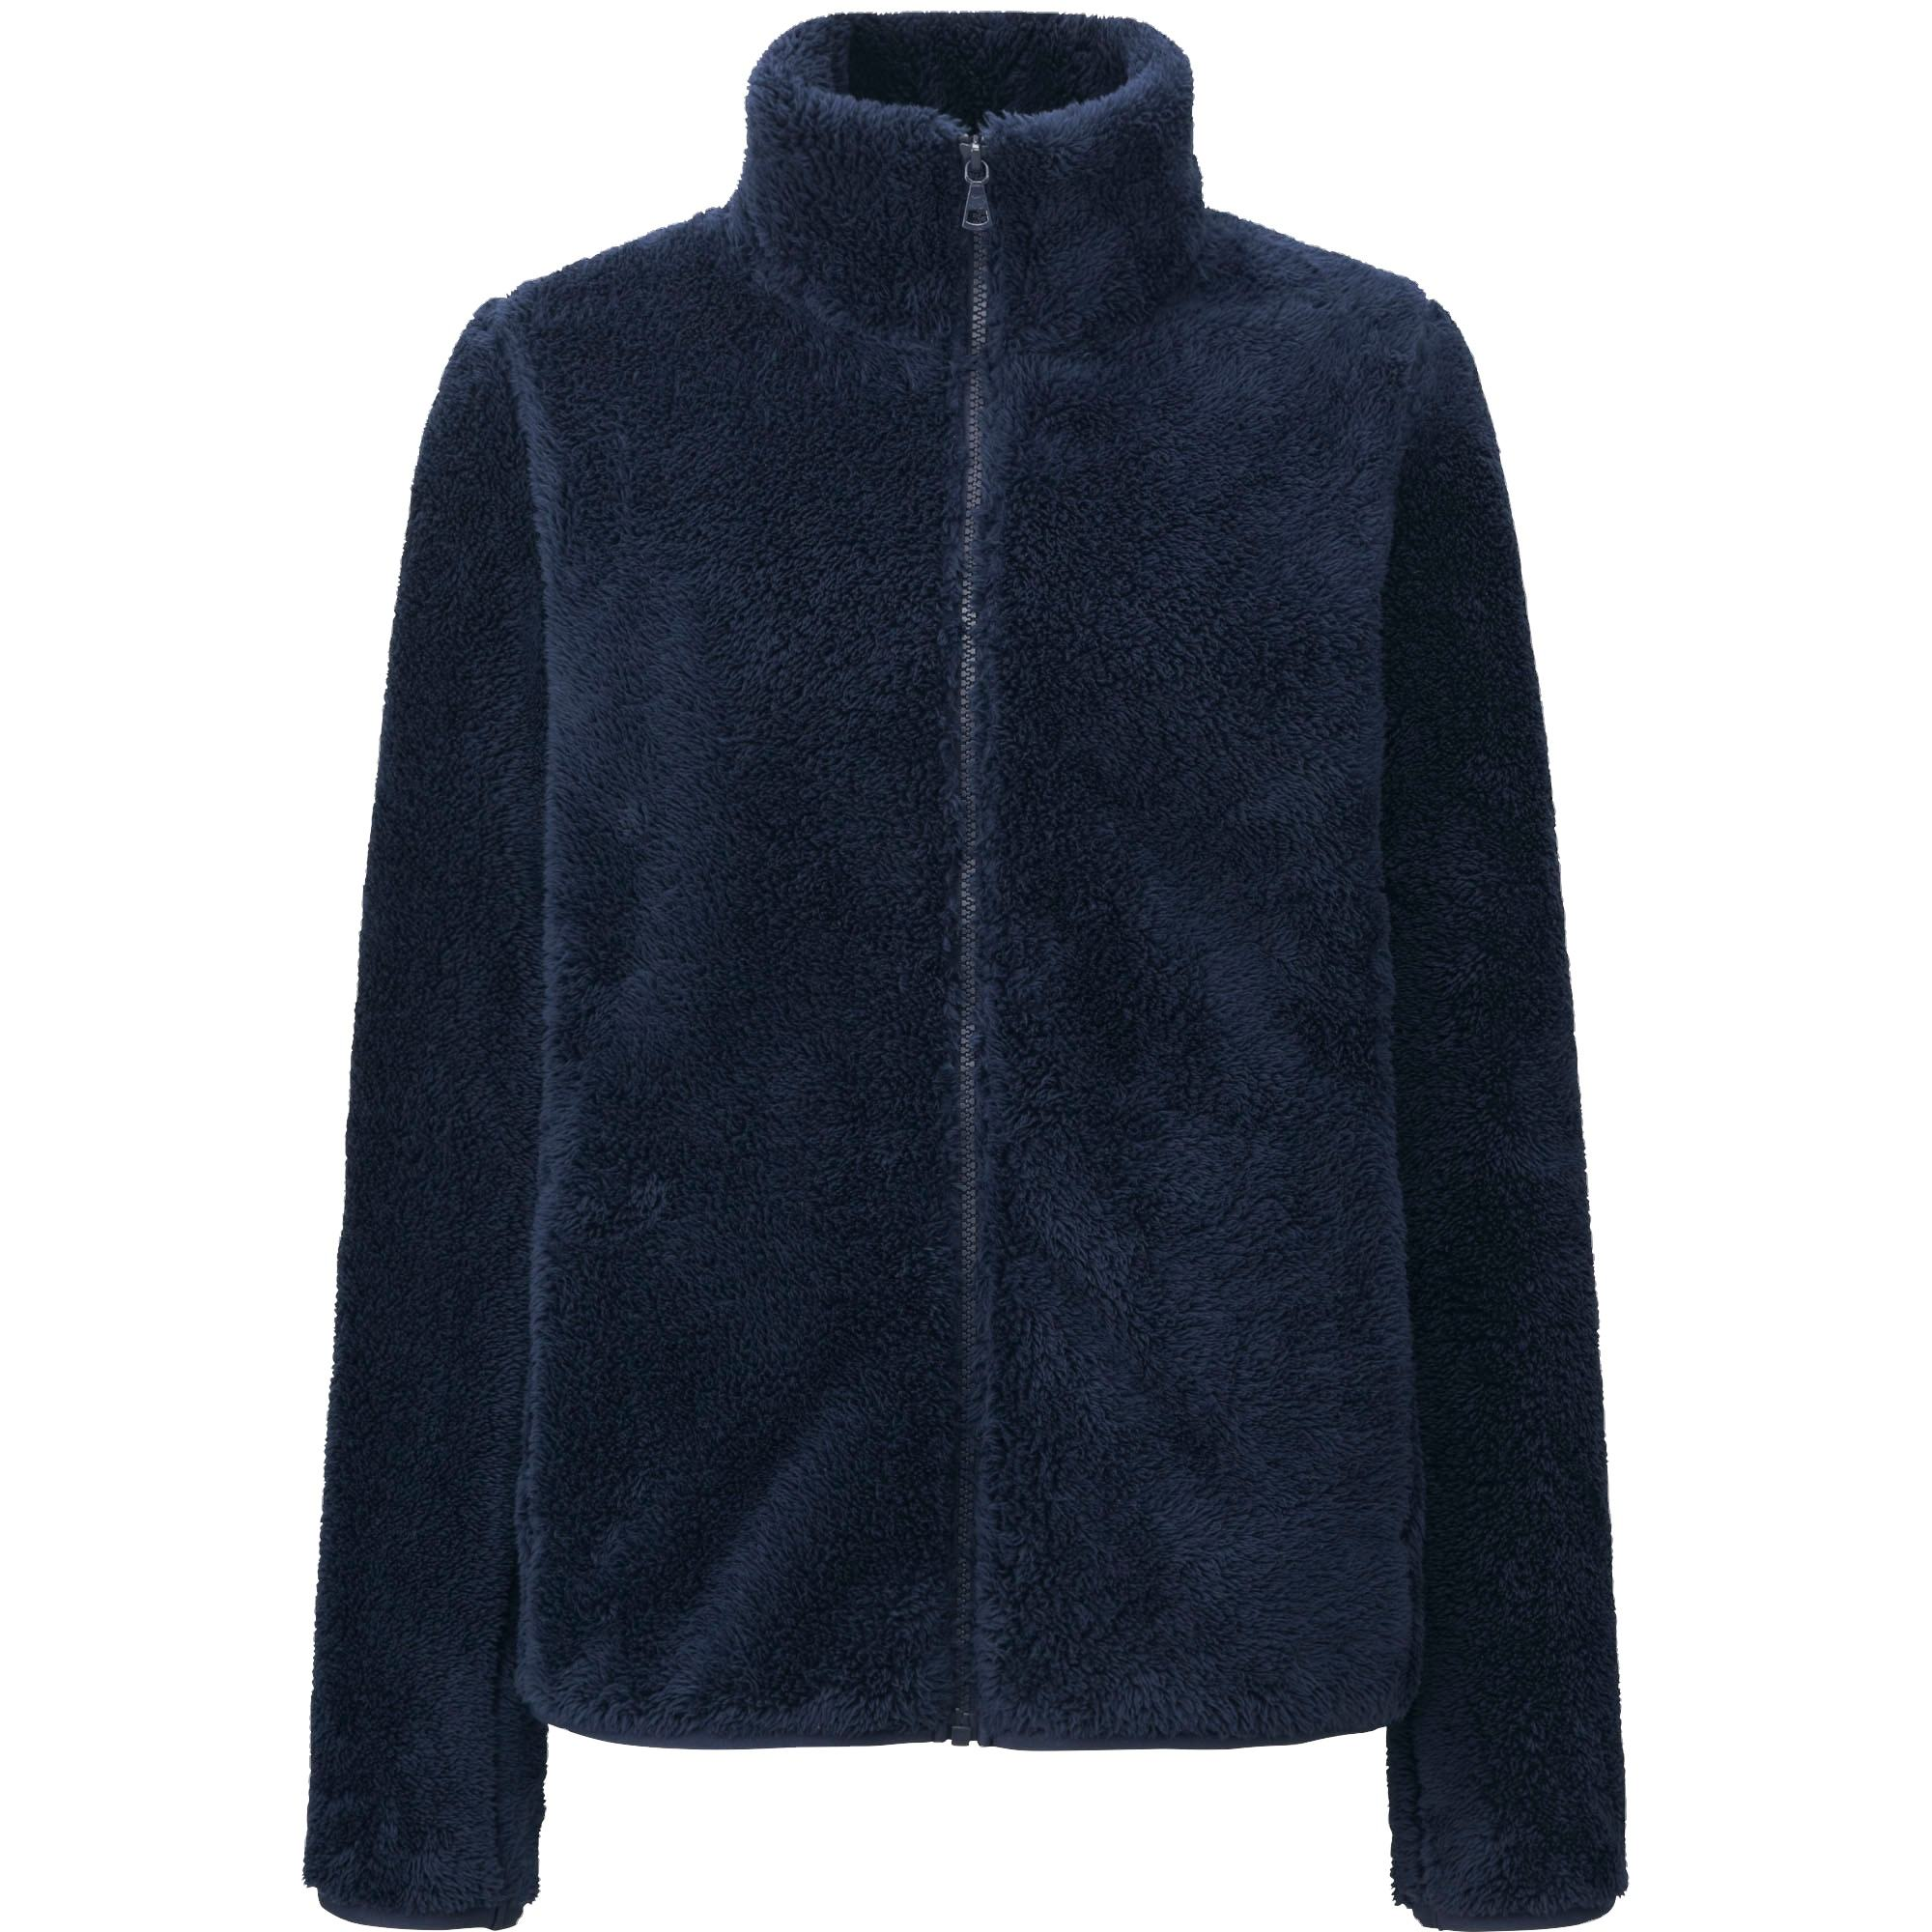 Navy Blue Turtleneck Winter Season Fleece Jacket For Men's From Bangladesh